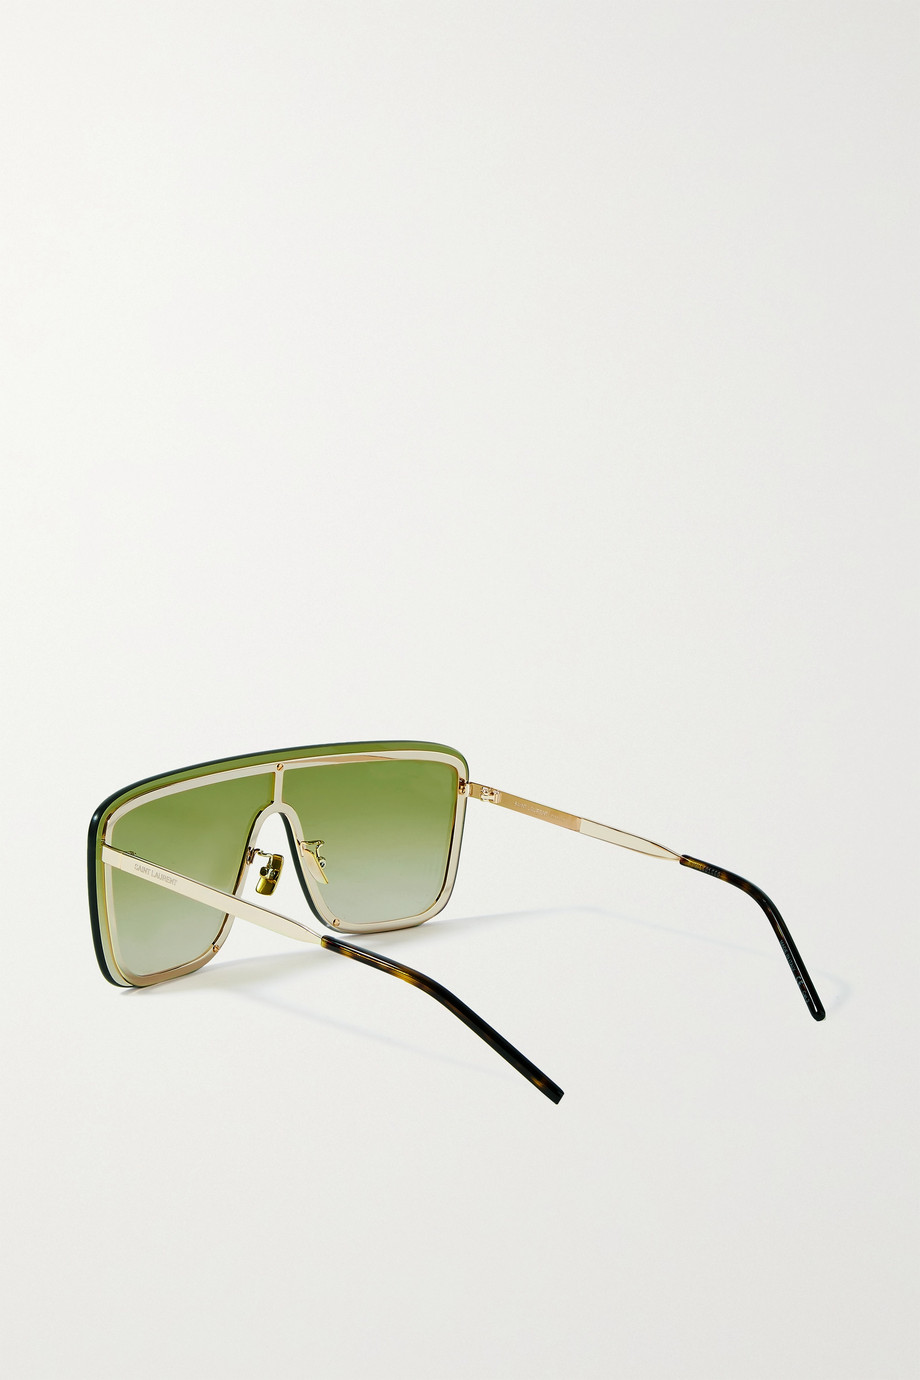 SAINT LAURENT D-frame gold-tone sunglasses